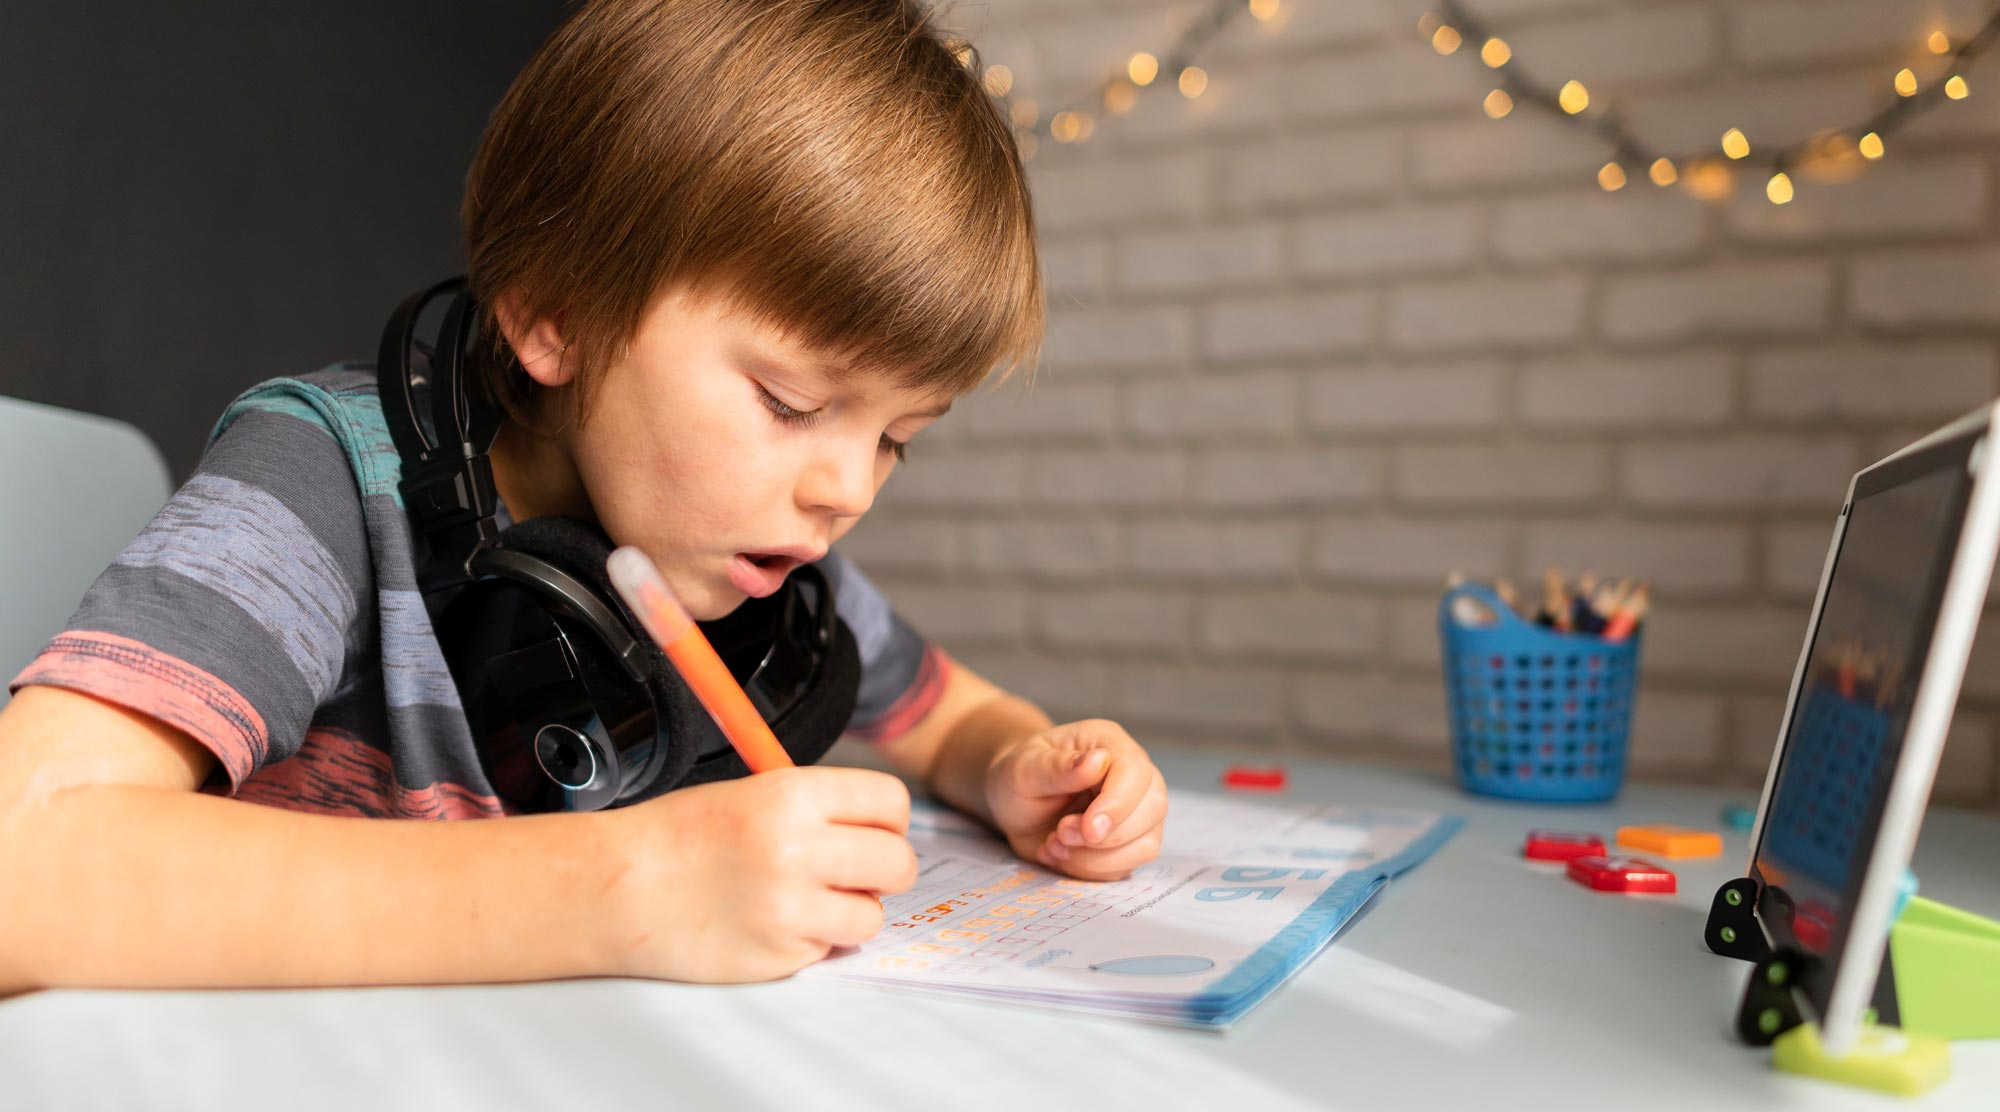 We few hands-on tips and tricks to help your kid ease into and enjoy remote learning through virtual school.